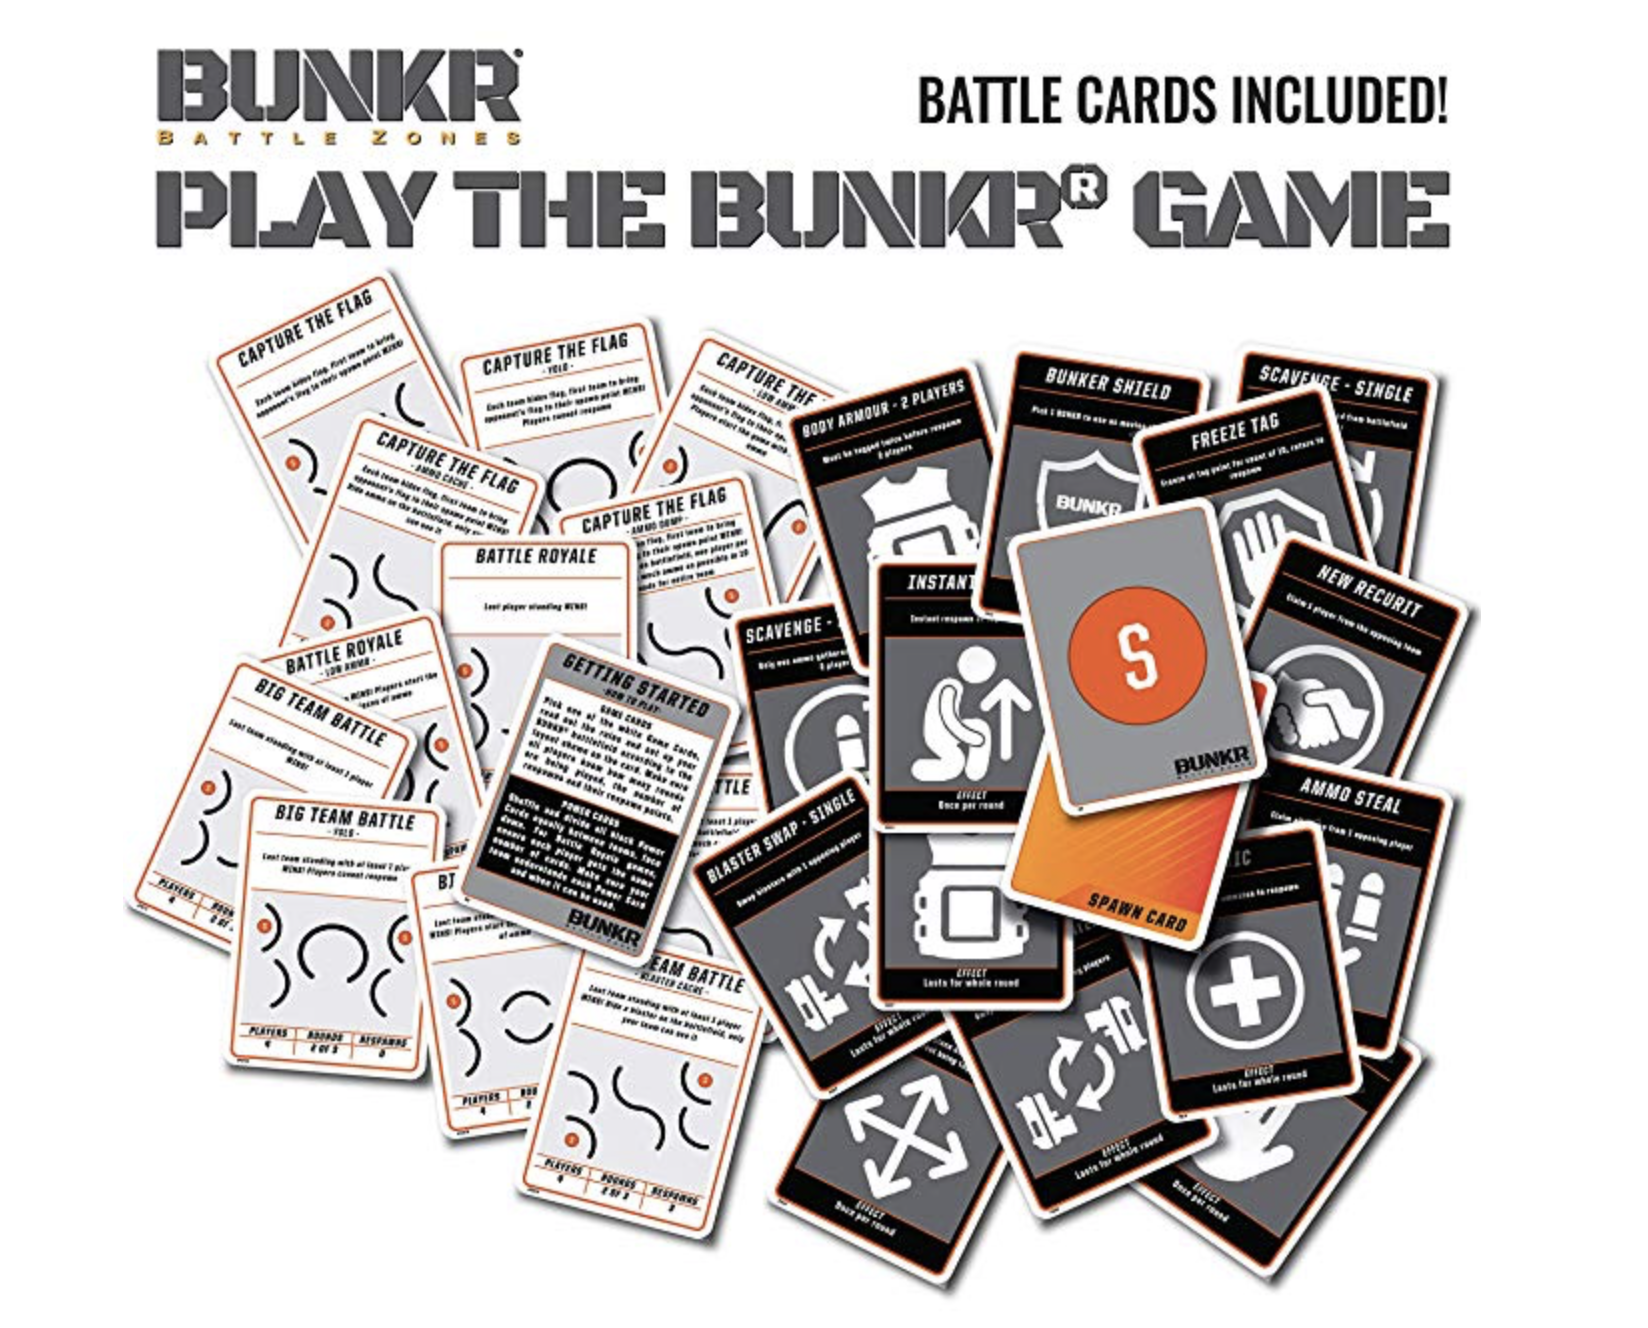 Includes Over 20 Bunkr Game cards.